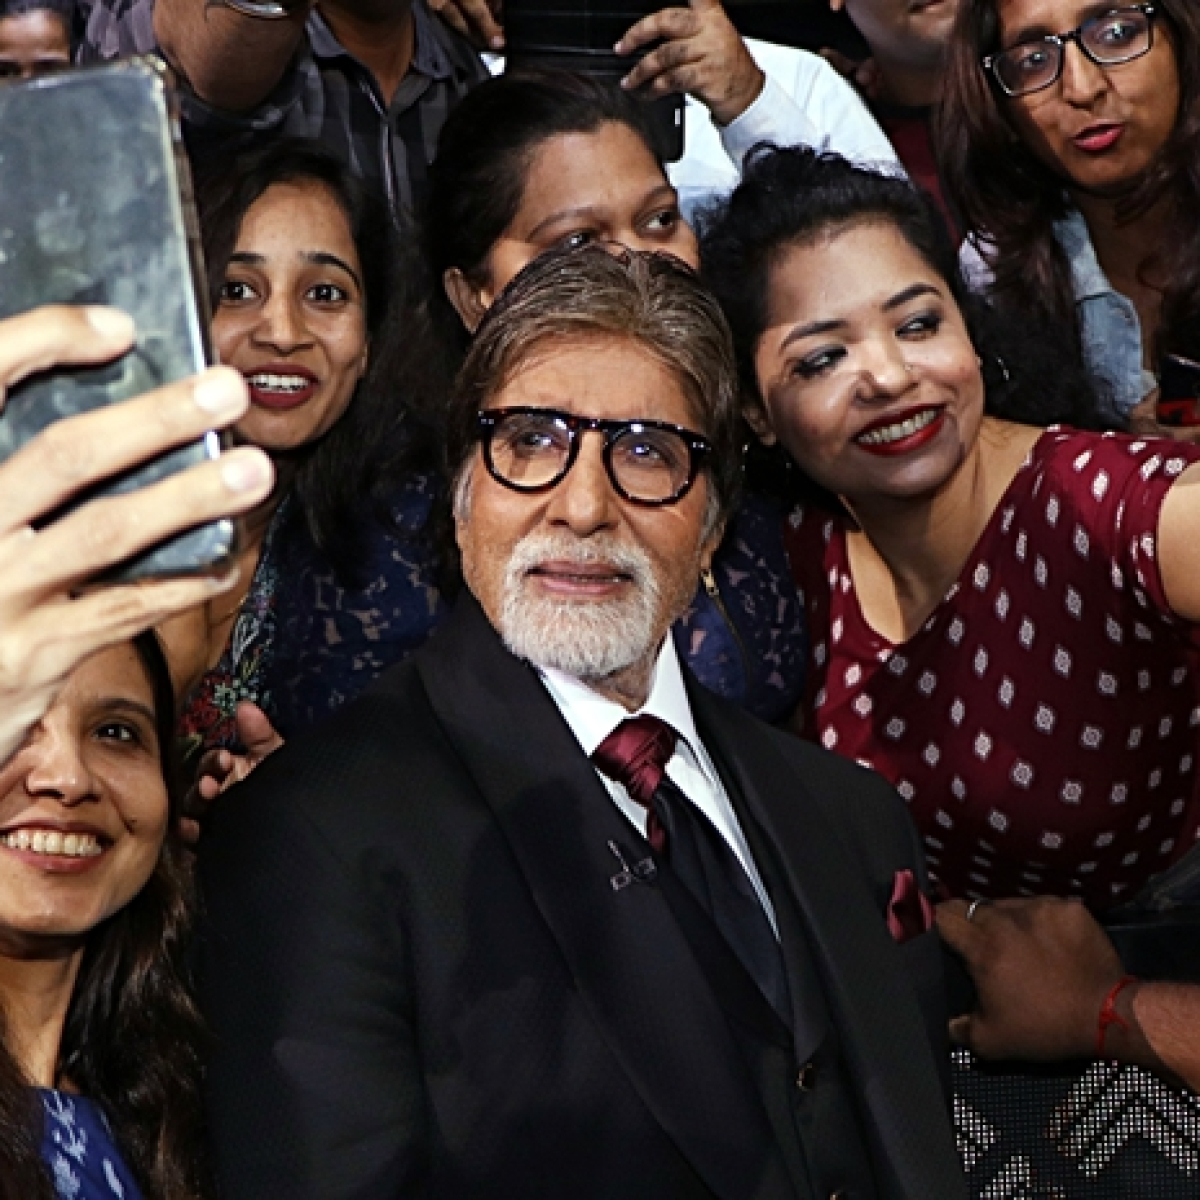 Amitabh Bachchan shares picture wearing a 'bikini' to gain 'big numbers' on Instagram